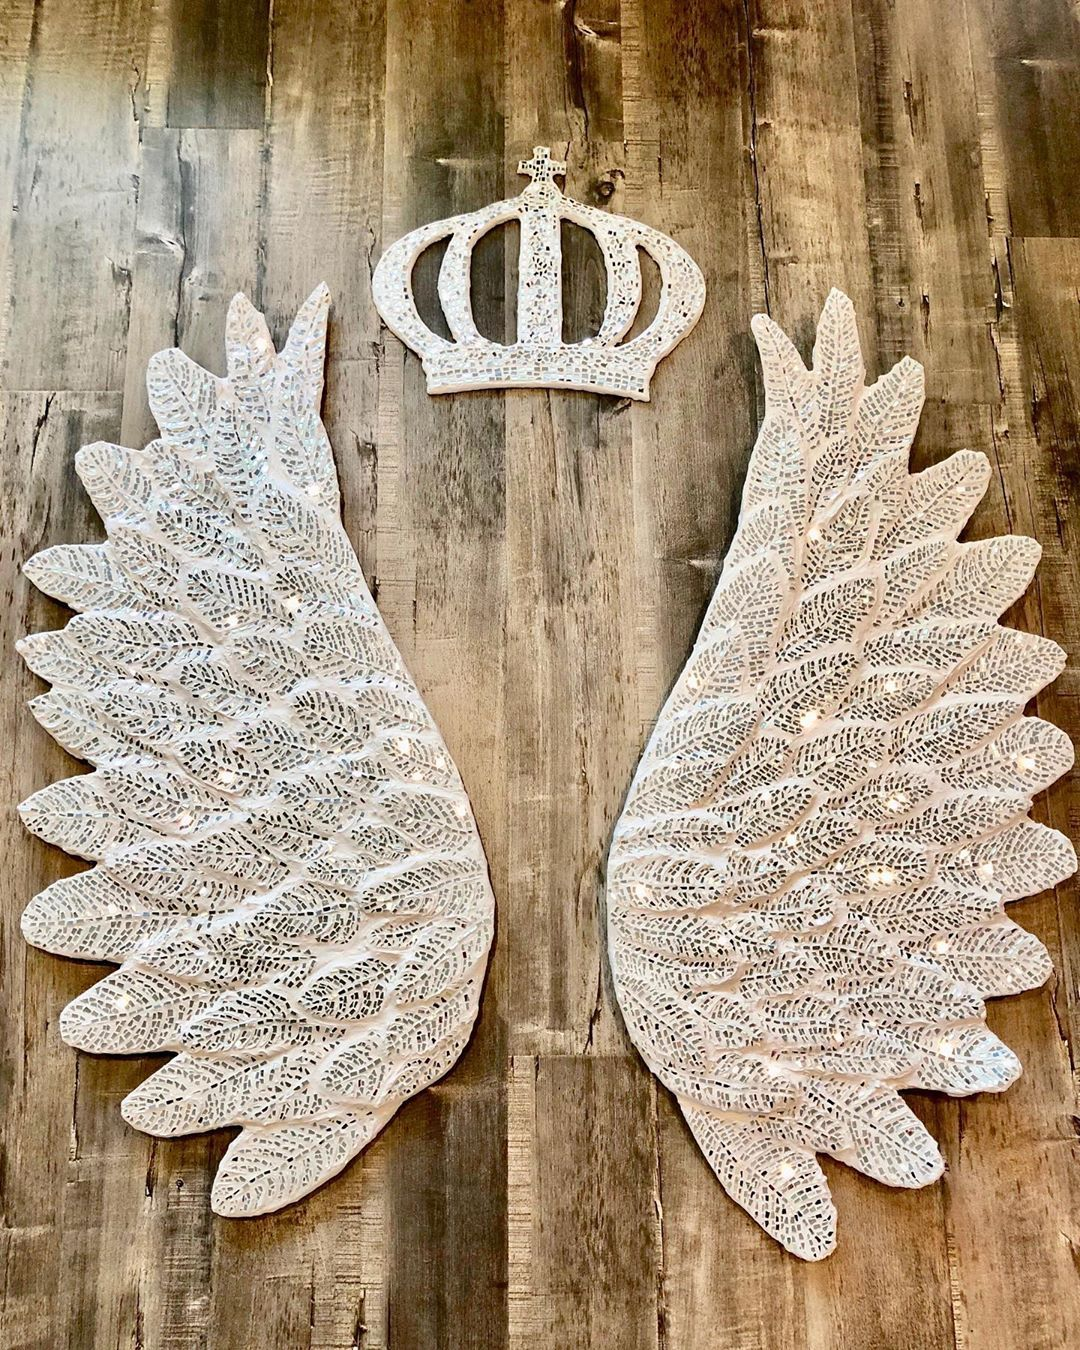 I LOVE making angel wings!!!! This is from my 2018 collection, The reflection! Made of glass 😍 this set will be showcased on November 7th for my artist Talk at the surrey art gallery. Click on the link above for more details on my website under events . I am looking forward to showcasing the ones I am working on for my 2020 collection 🤫 but I can't show my new stuff just yet . . . . .